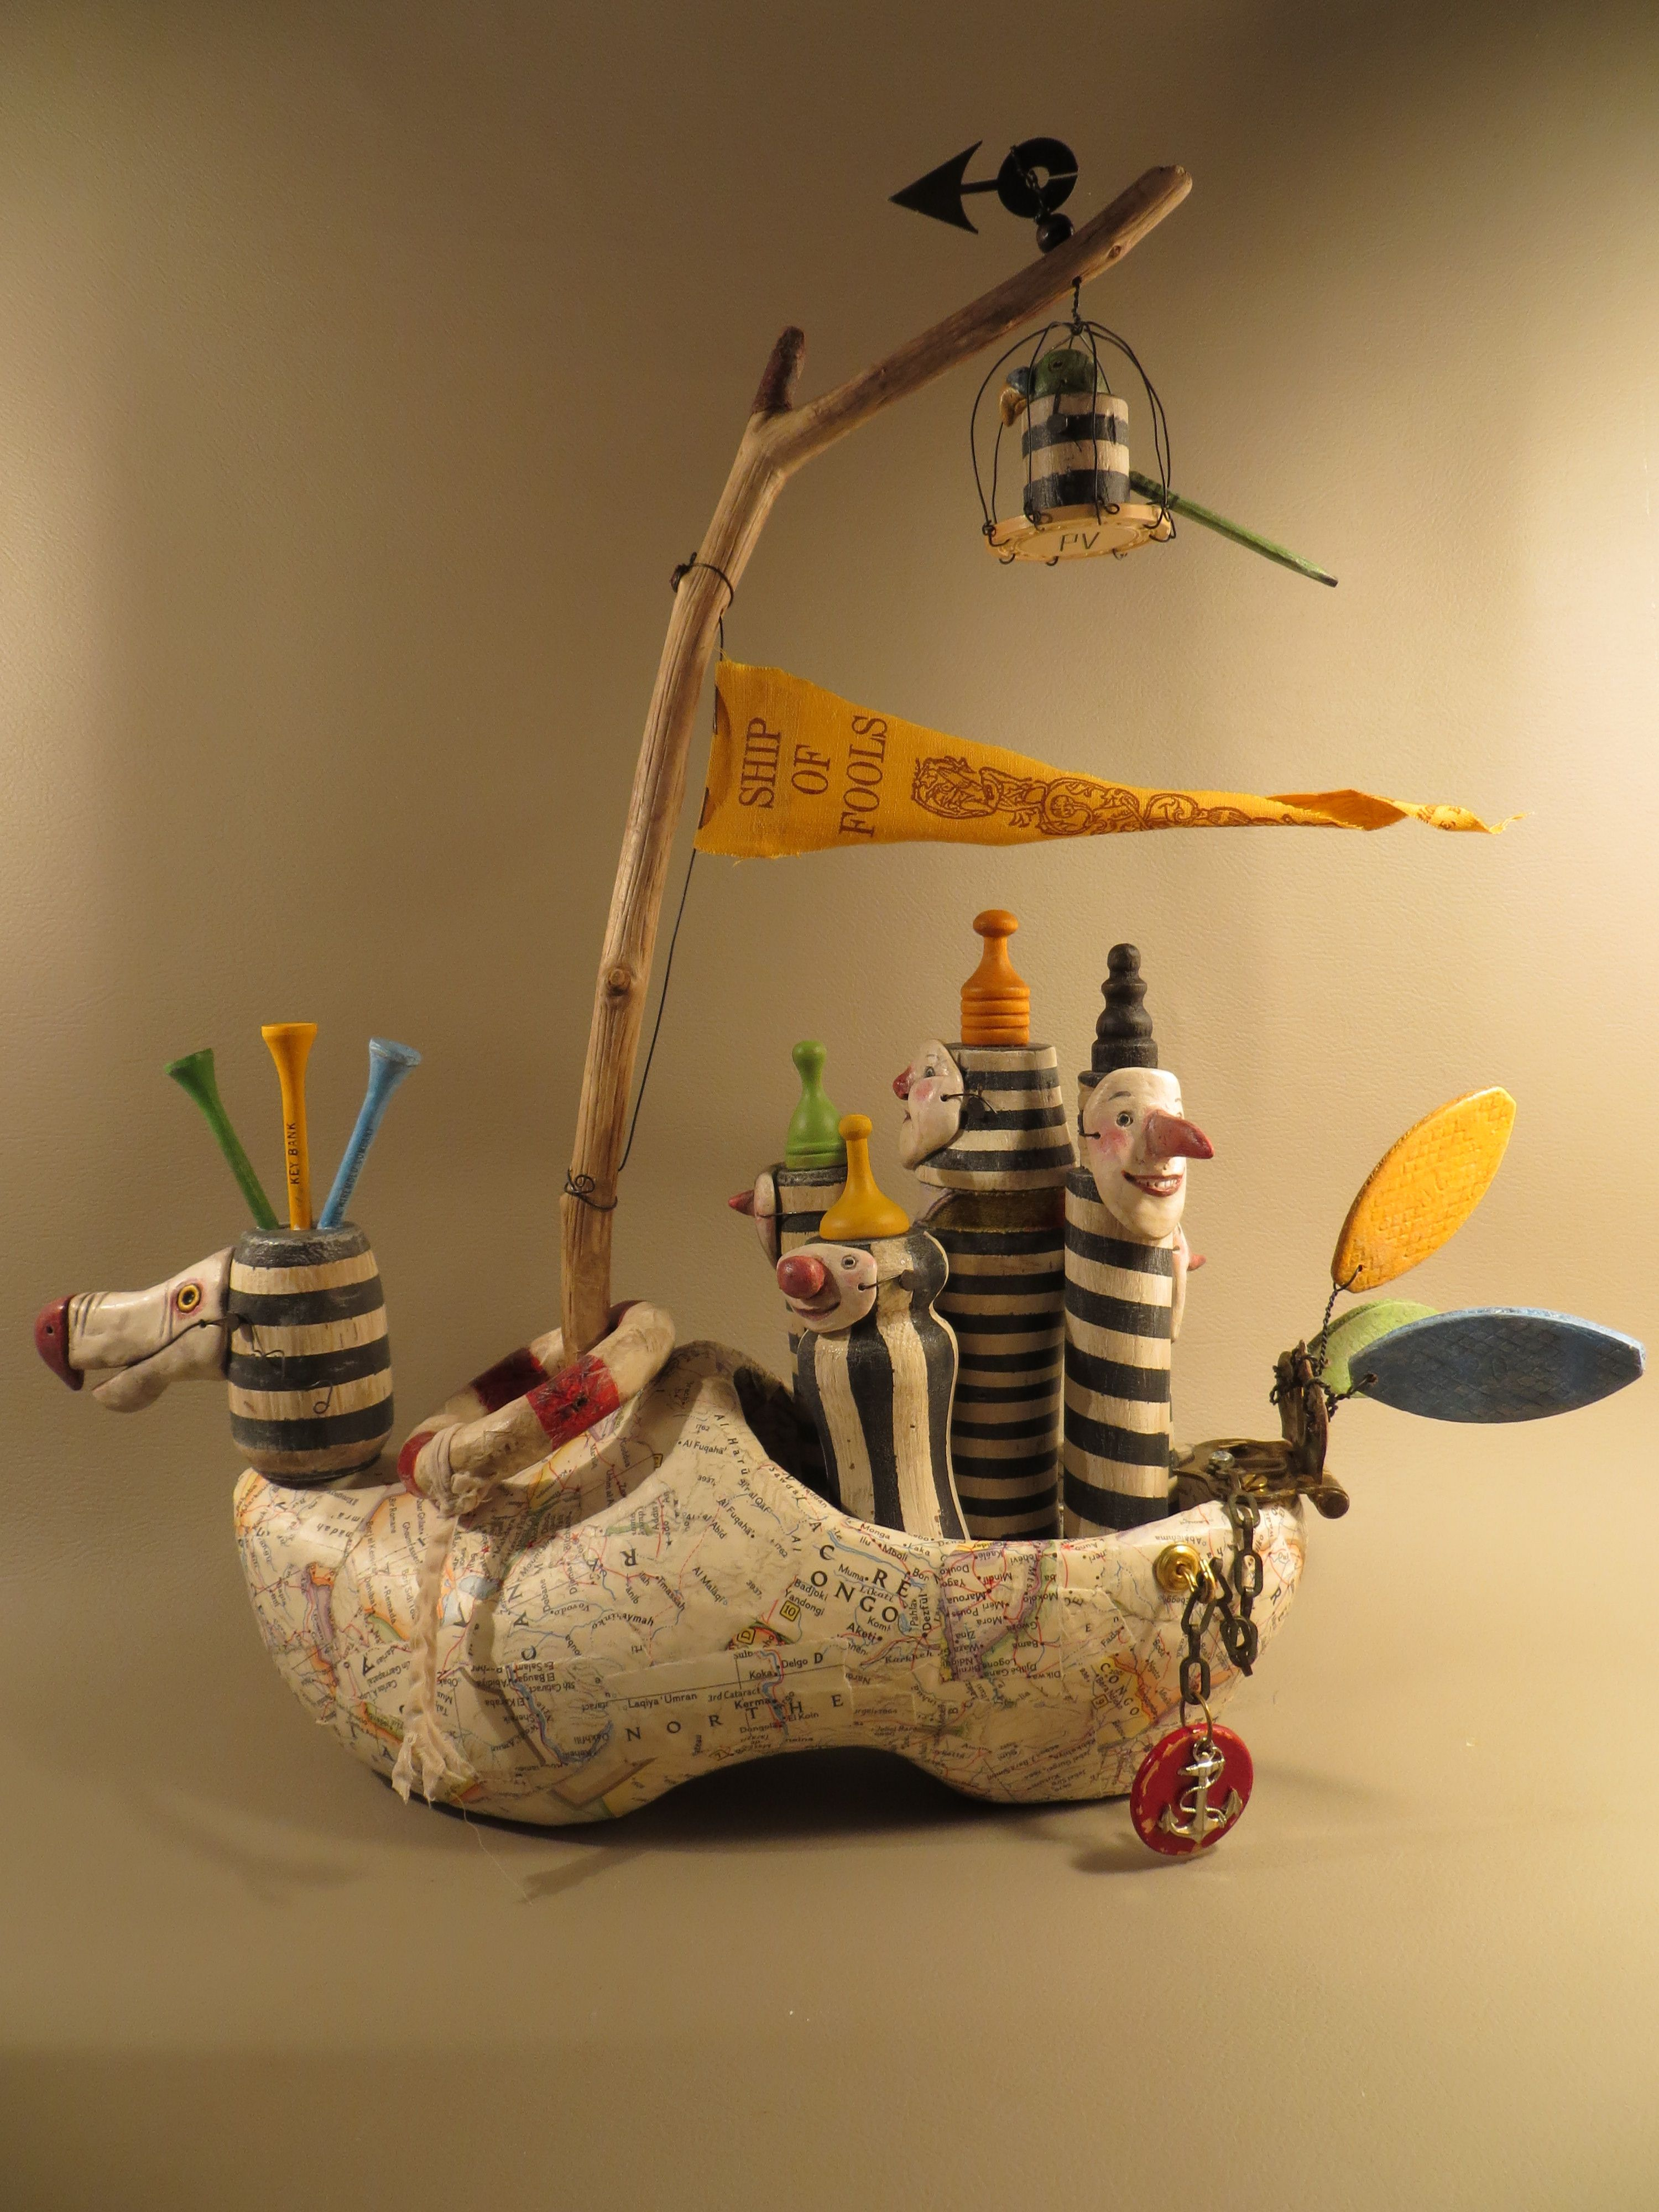 Ship Of Fools Artwork By Leona Keene Sewitsky Art Dolls Pcb Sculptures Artist Upcycles Old Circuit Boards Into